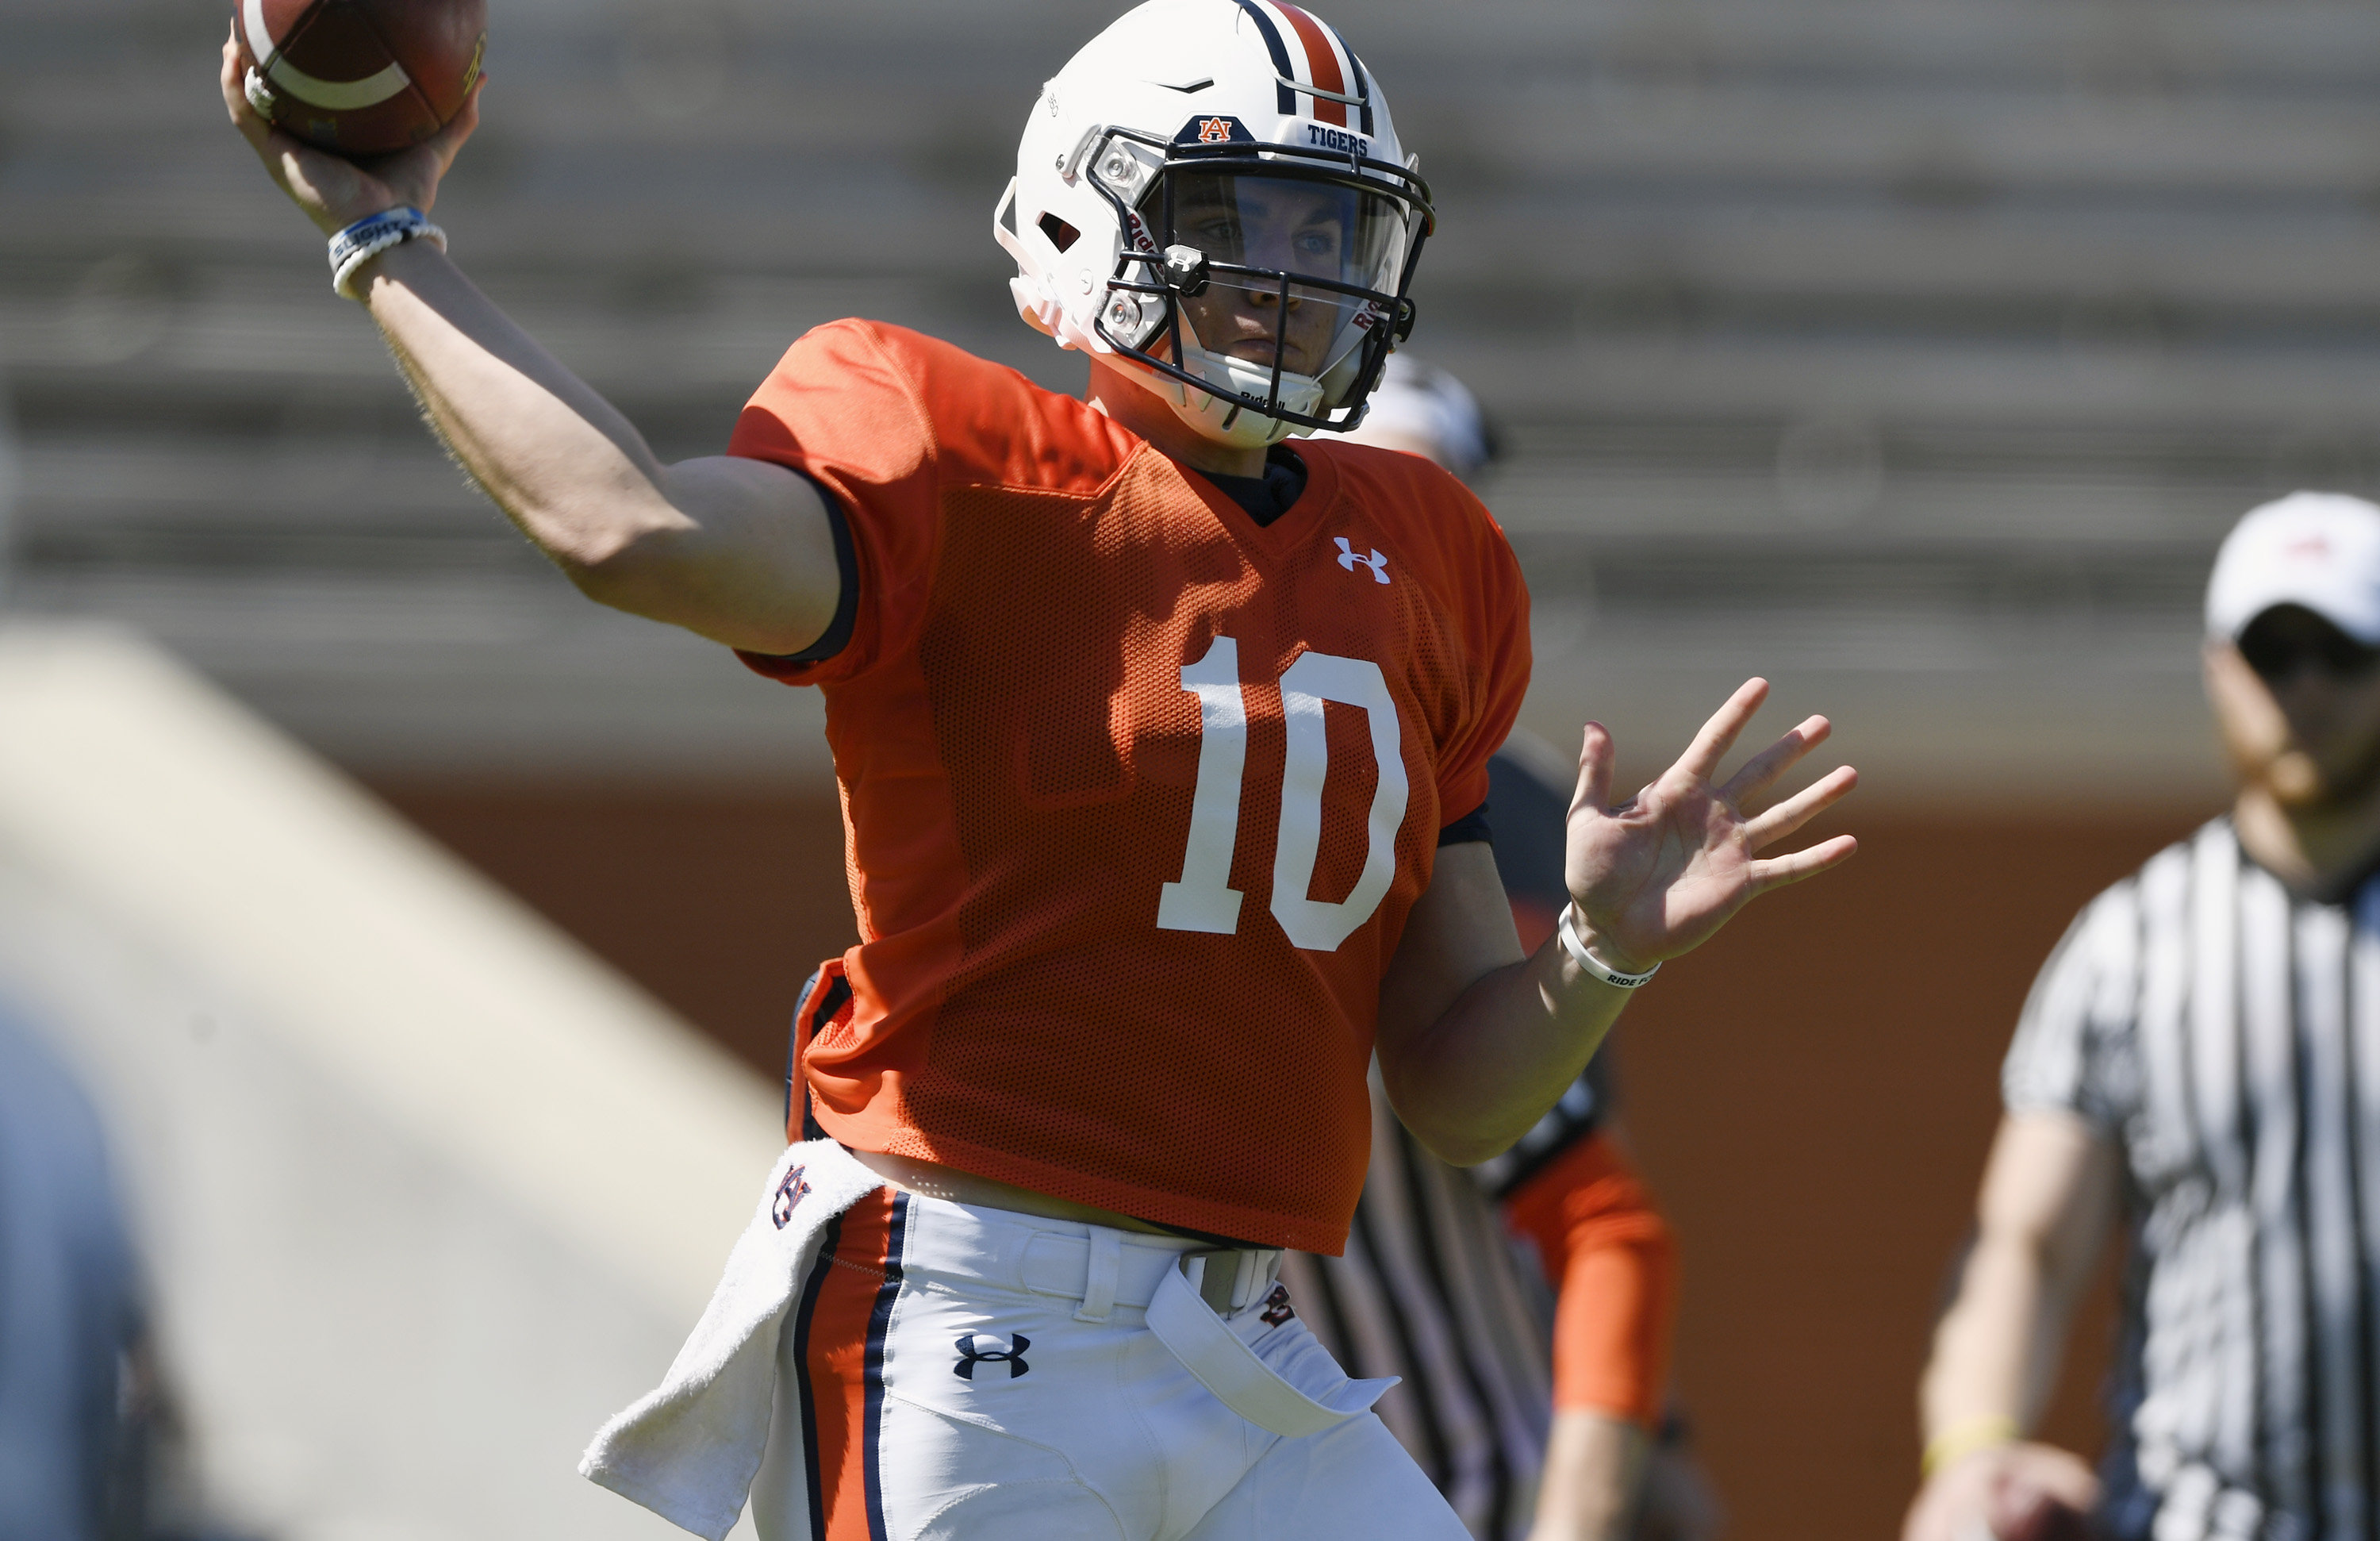 Bo Nix knows he's not a finished product, but Auburn's QB1 recognizes own strengths - AL.com